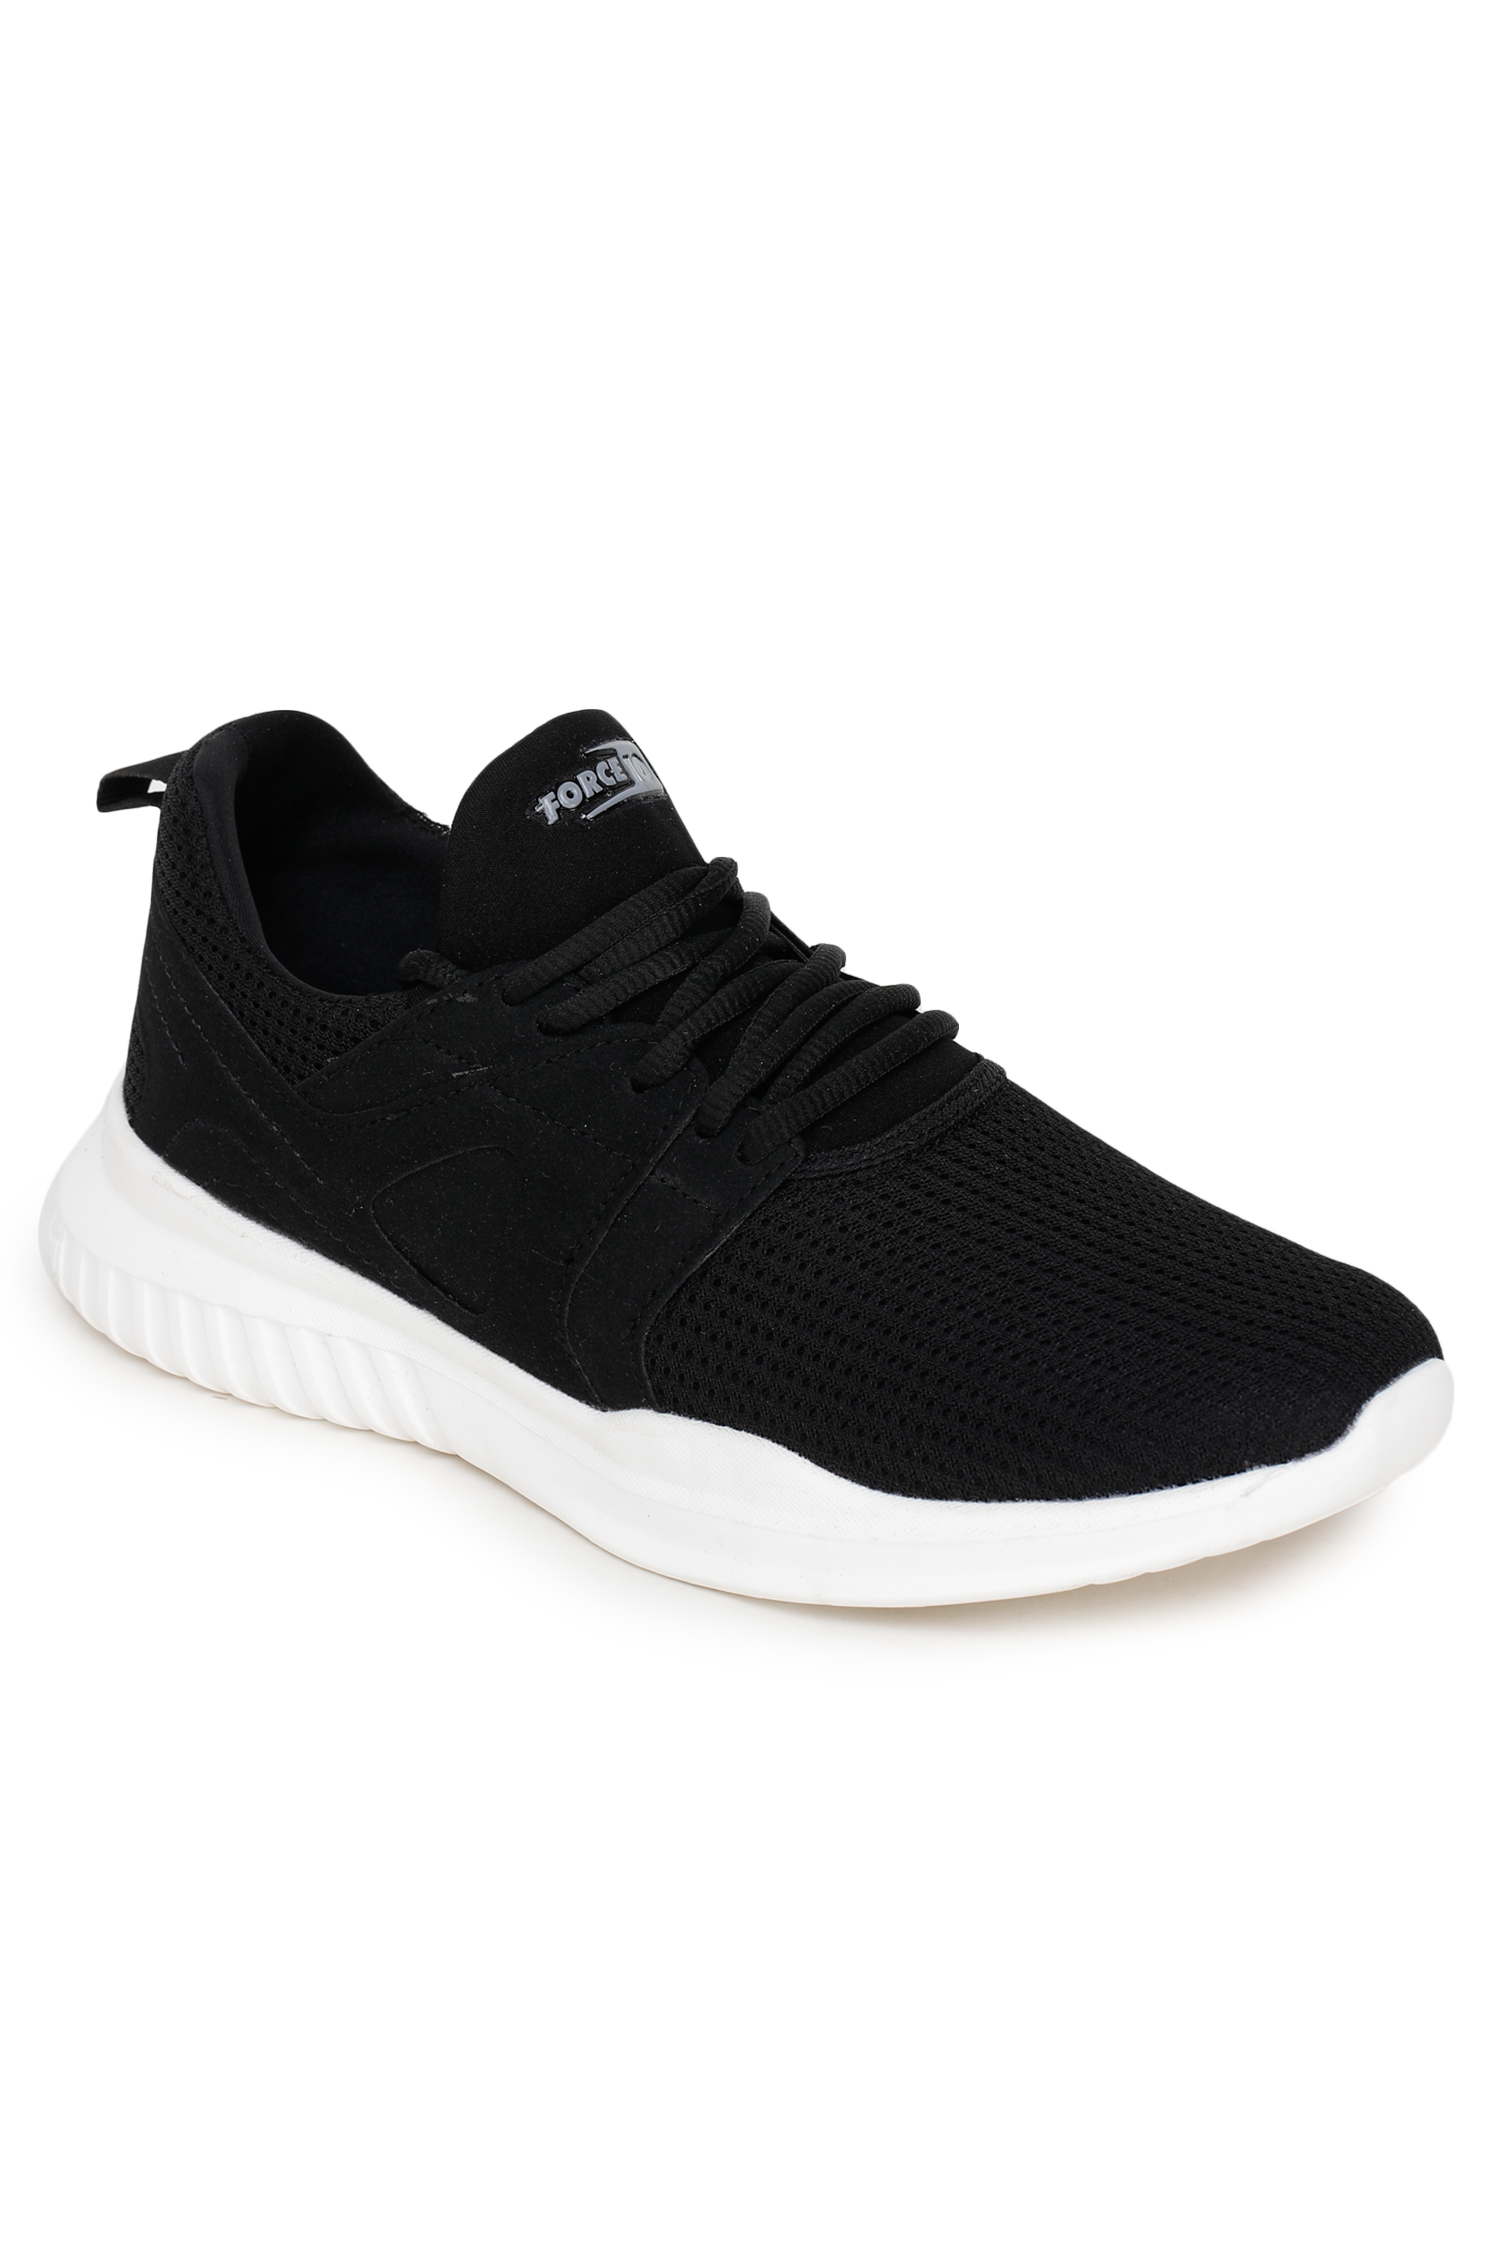 Liberty | Liberty Force 10 Black Sports Running Shoes VISION-9M_Black For - Men